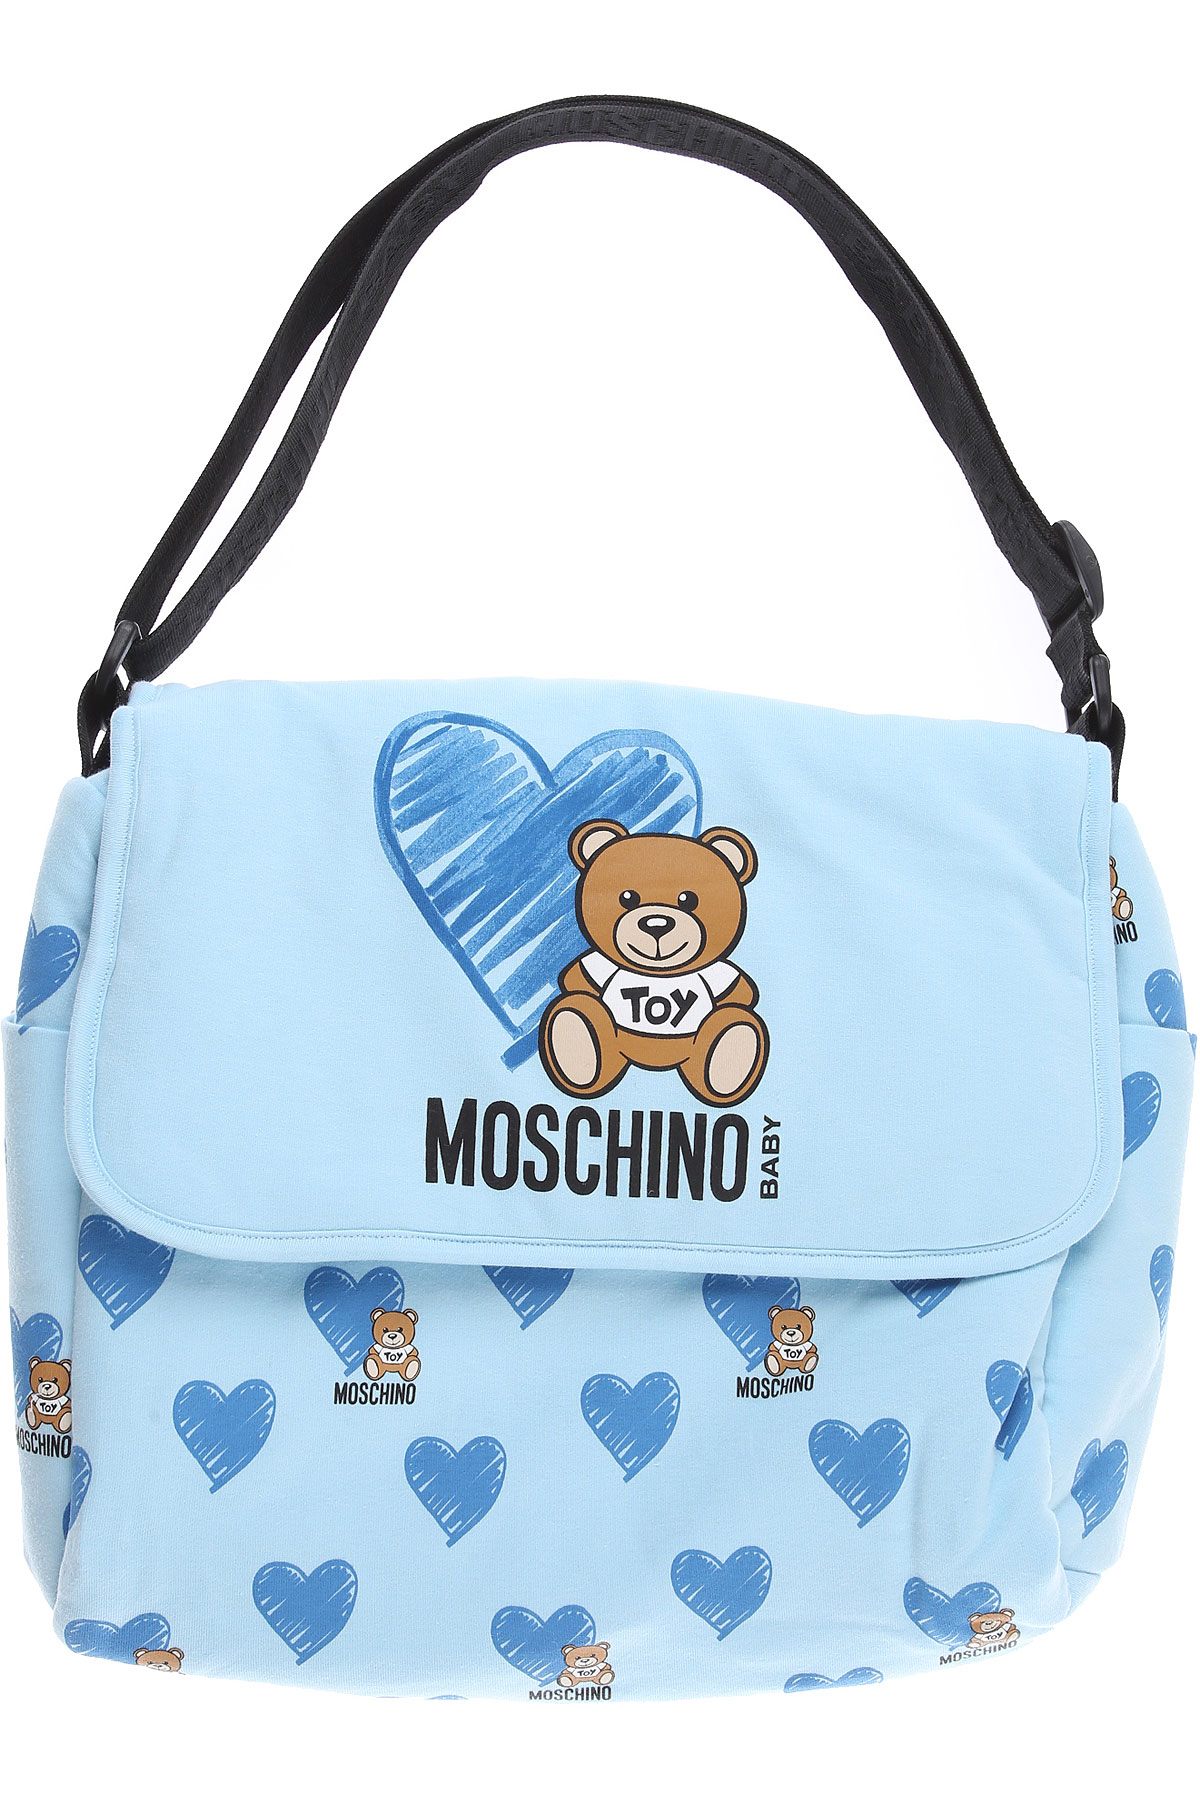 Moschino Baby Bodysuits & Onesies for Boys On Sale, Sky, Cotton, 2019